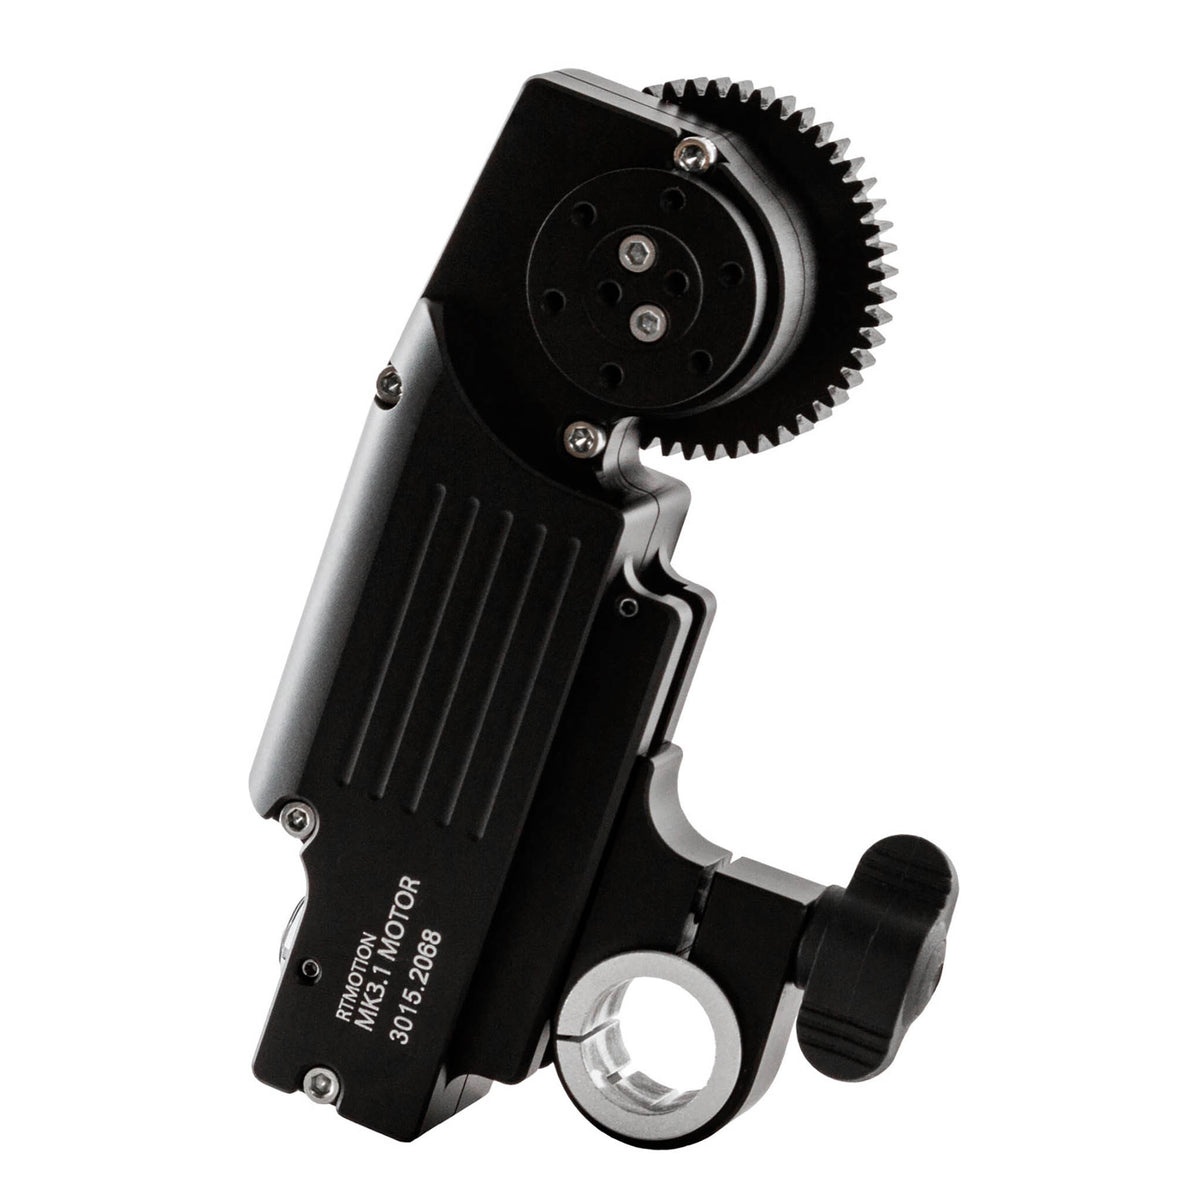 RT Motion MK3.1 wireless follow focus motor with 15mm-19mm clamp